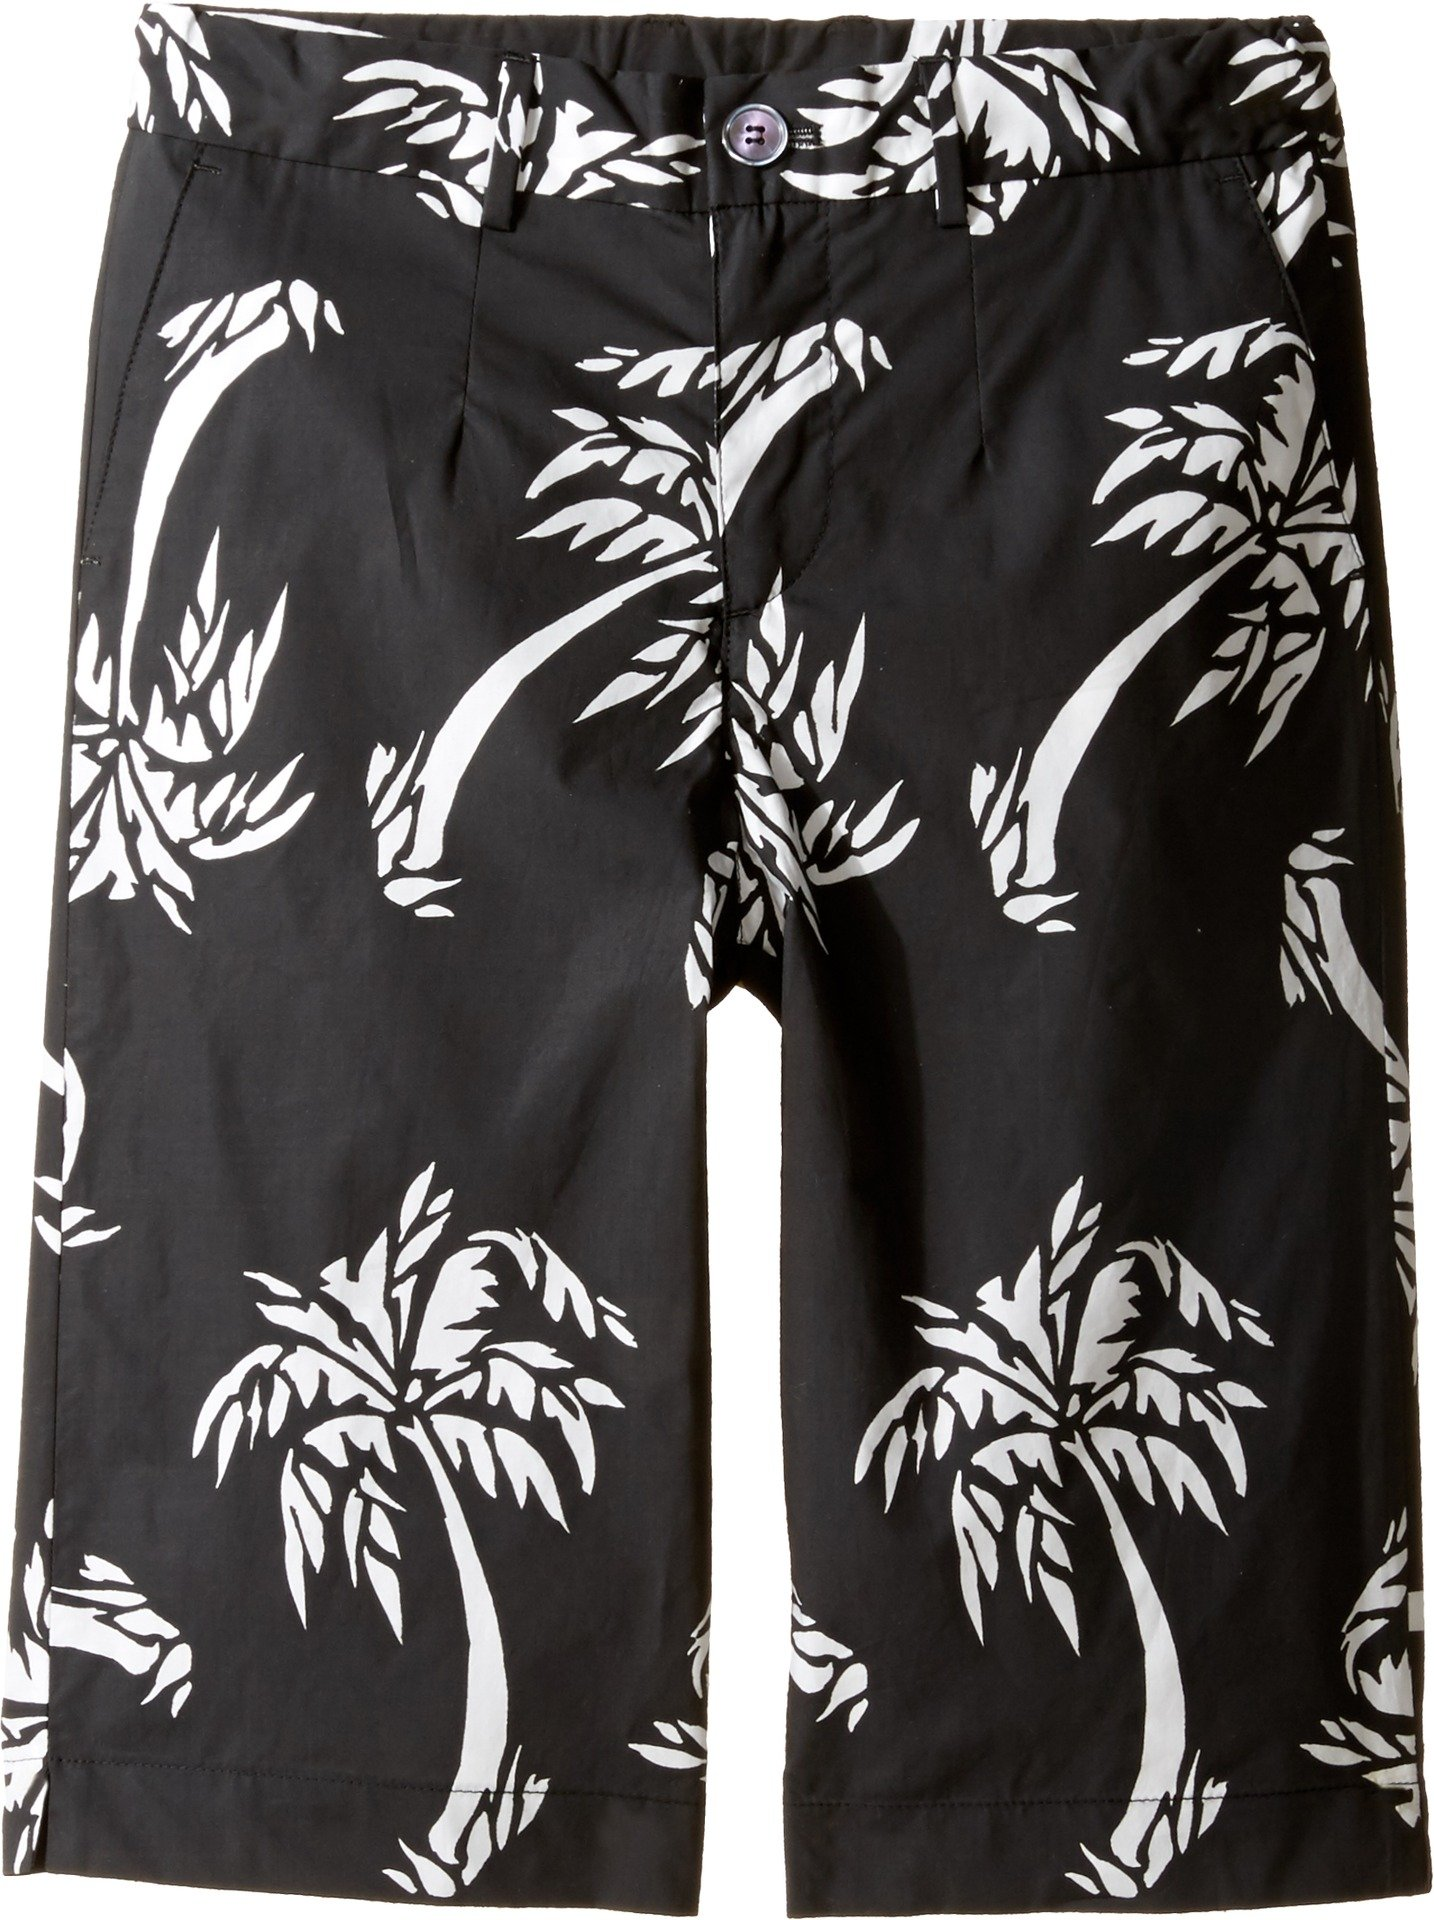 Dolce & Gabbana Kids Boy's Palm Leaf Bermuda (Big Kids) Black Print Shorts by Dolce & Gabbana